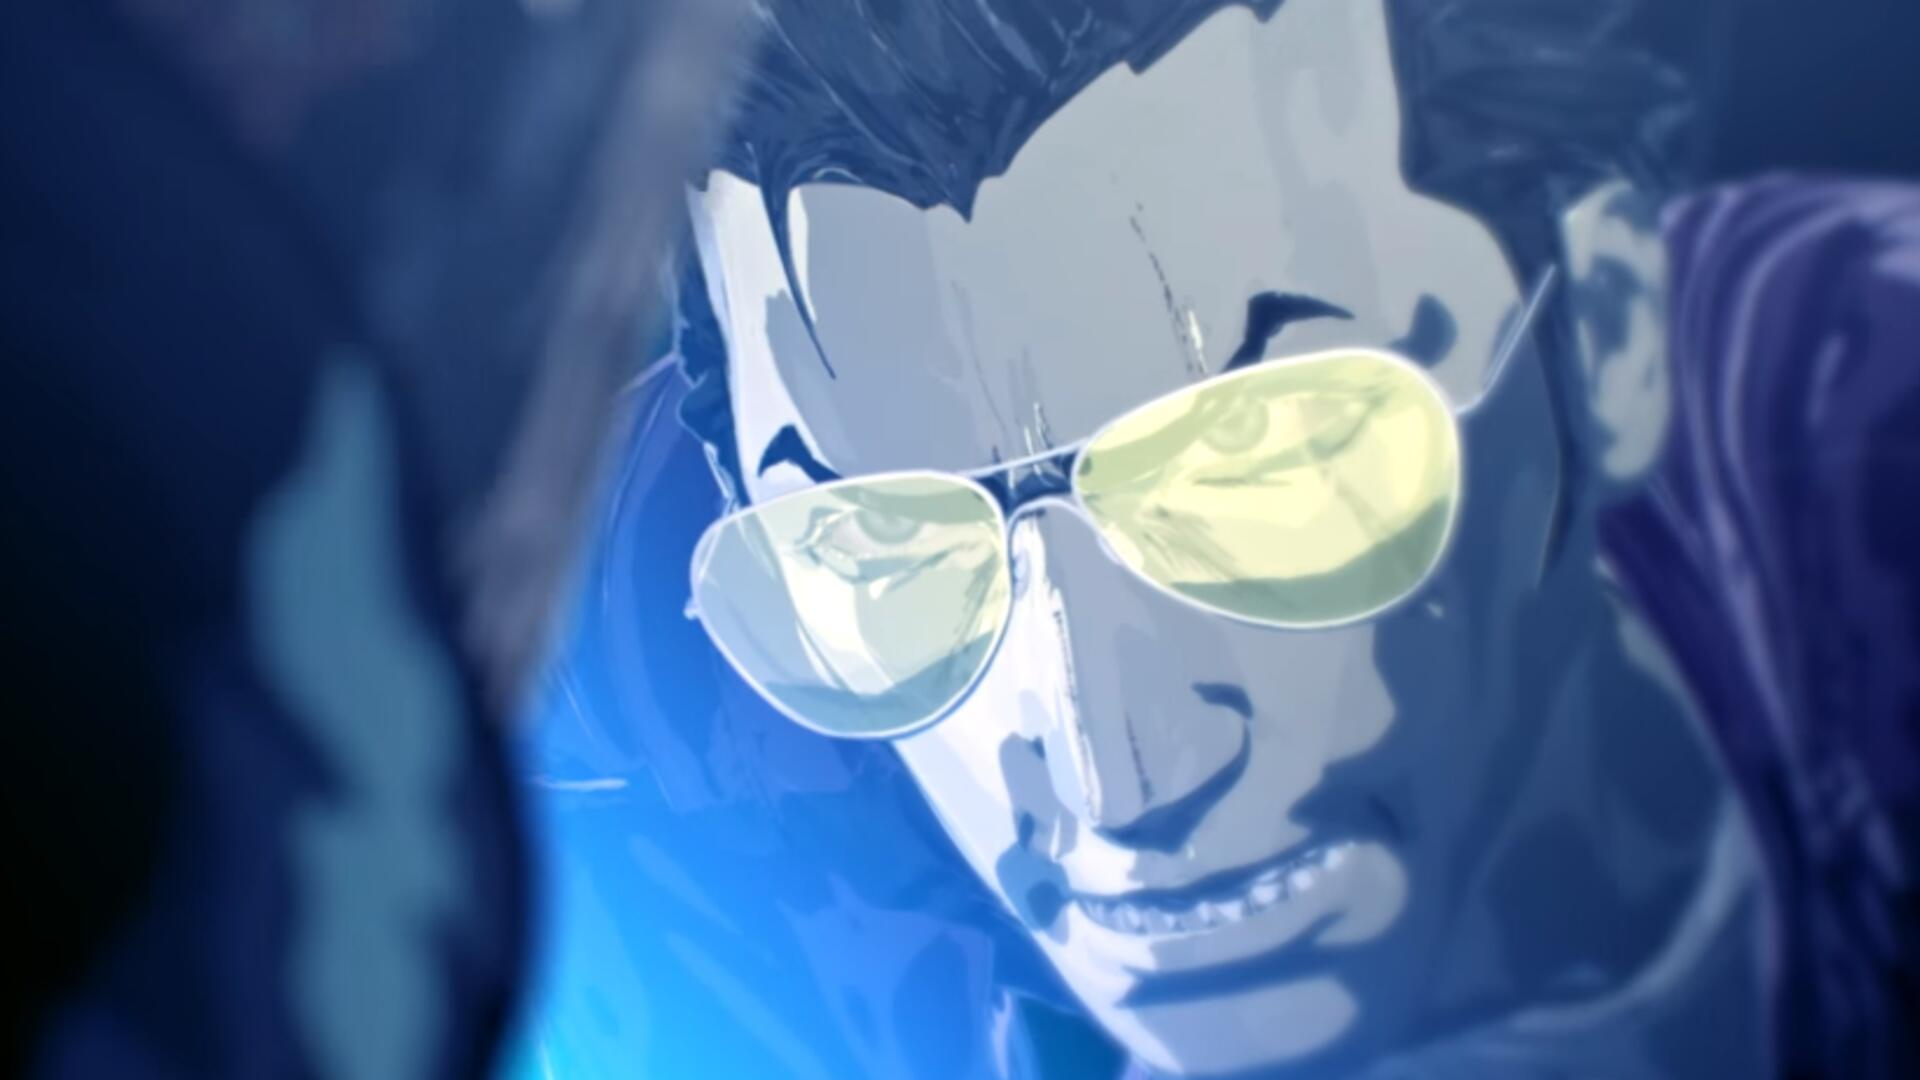 No More Heroes: Travis Strikes Again Includes Collaboration With Shovel Knight Developers